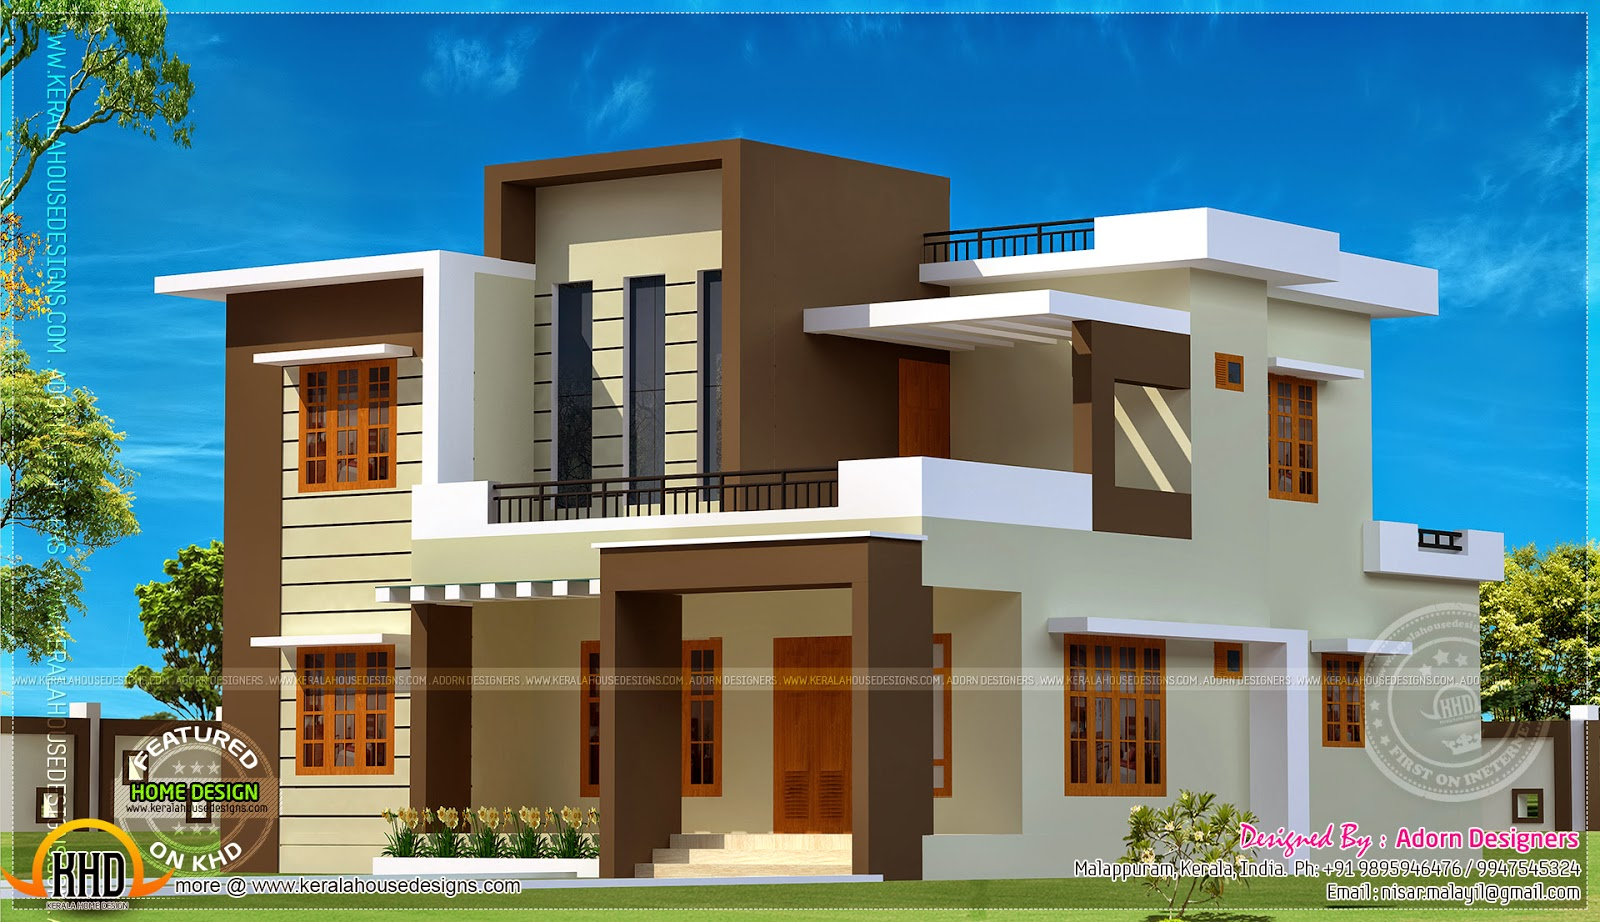 Simple house plans flat roof front design for Basic house design